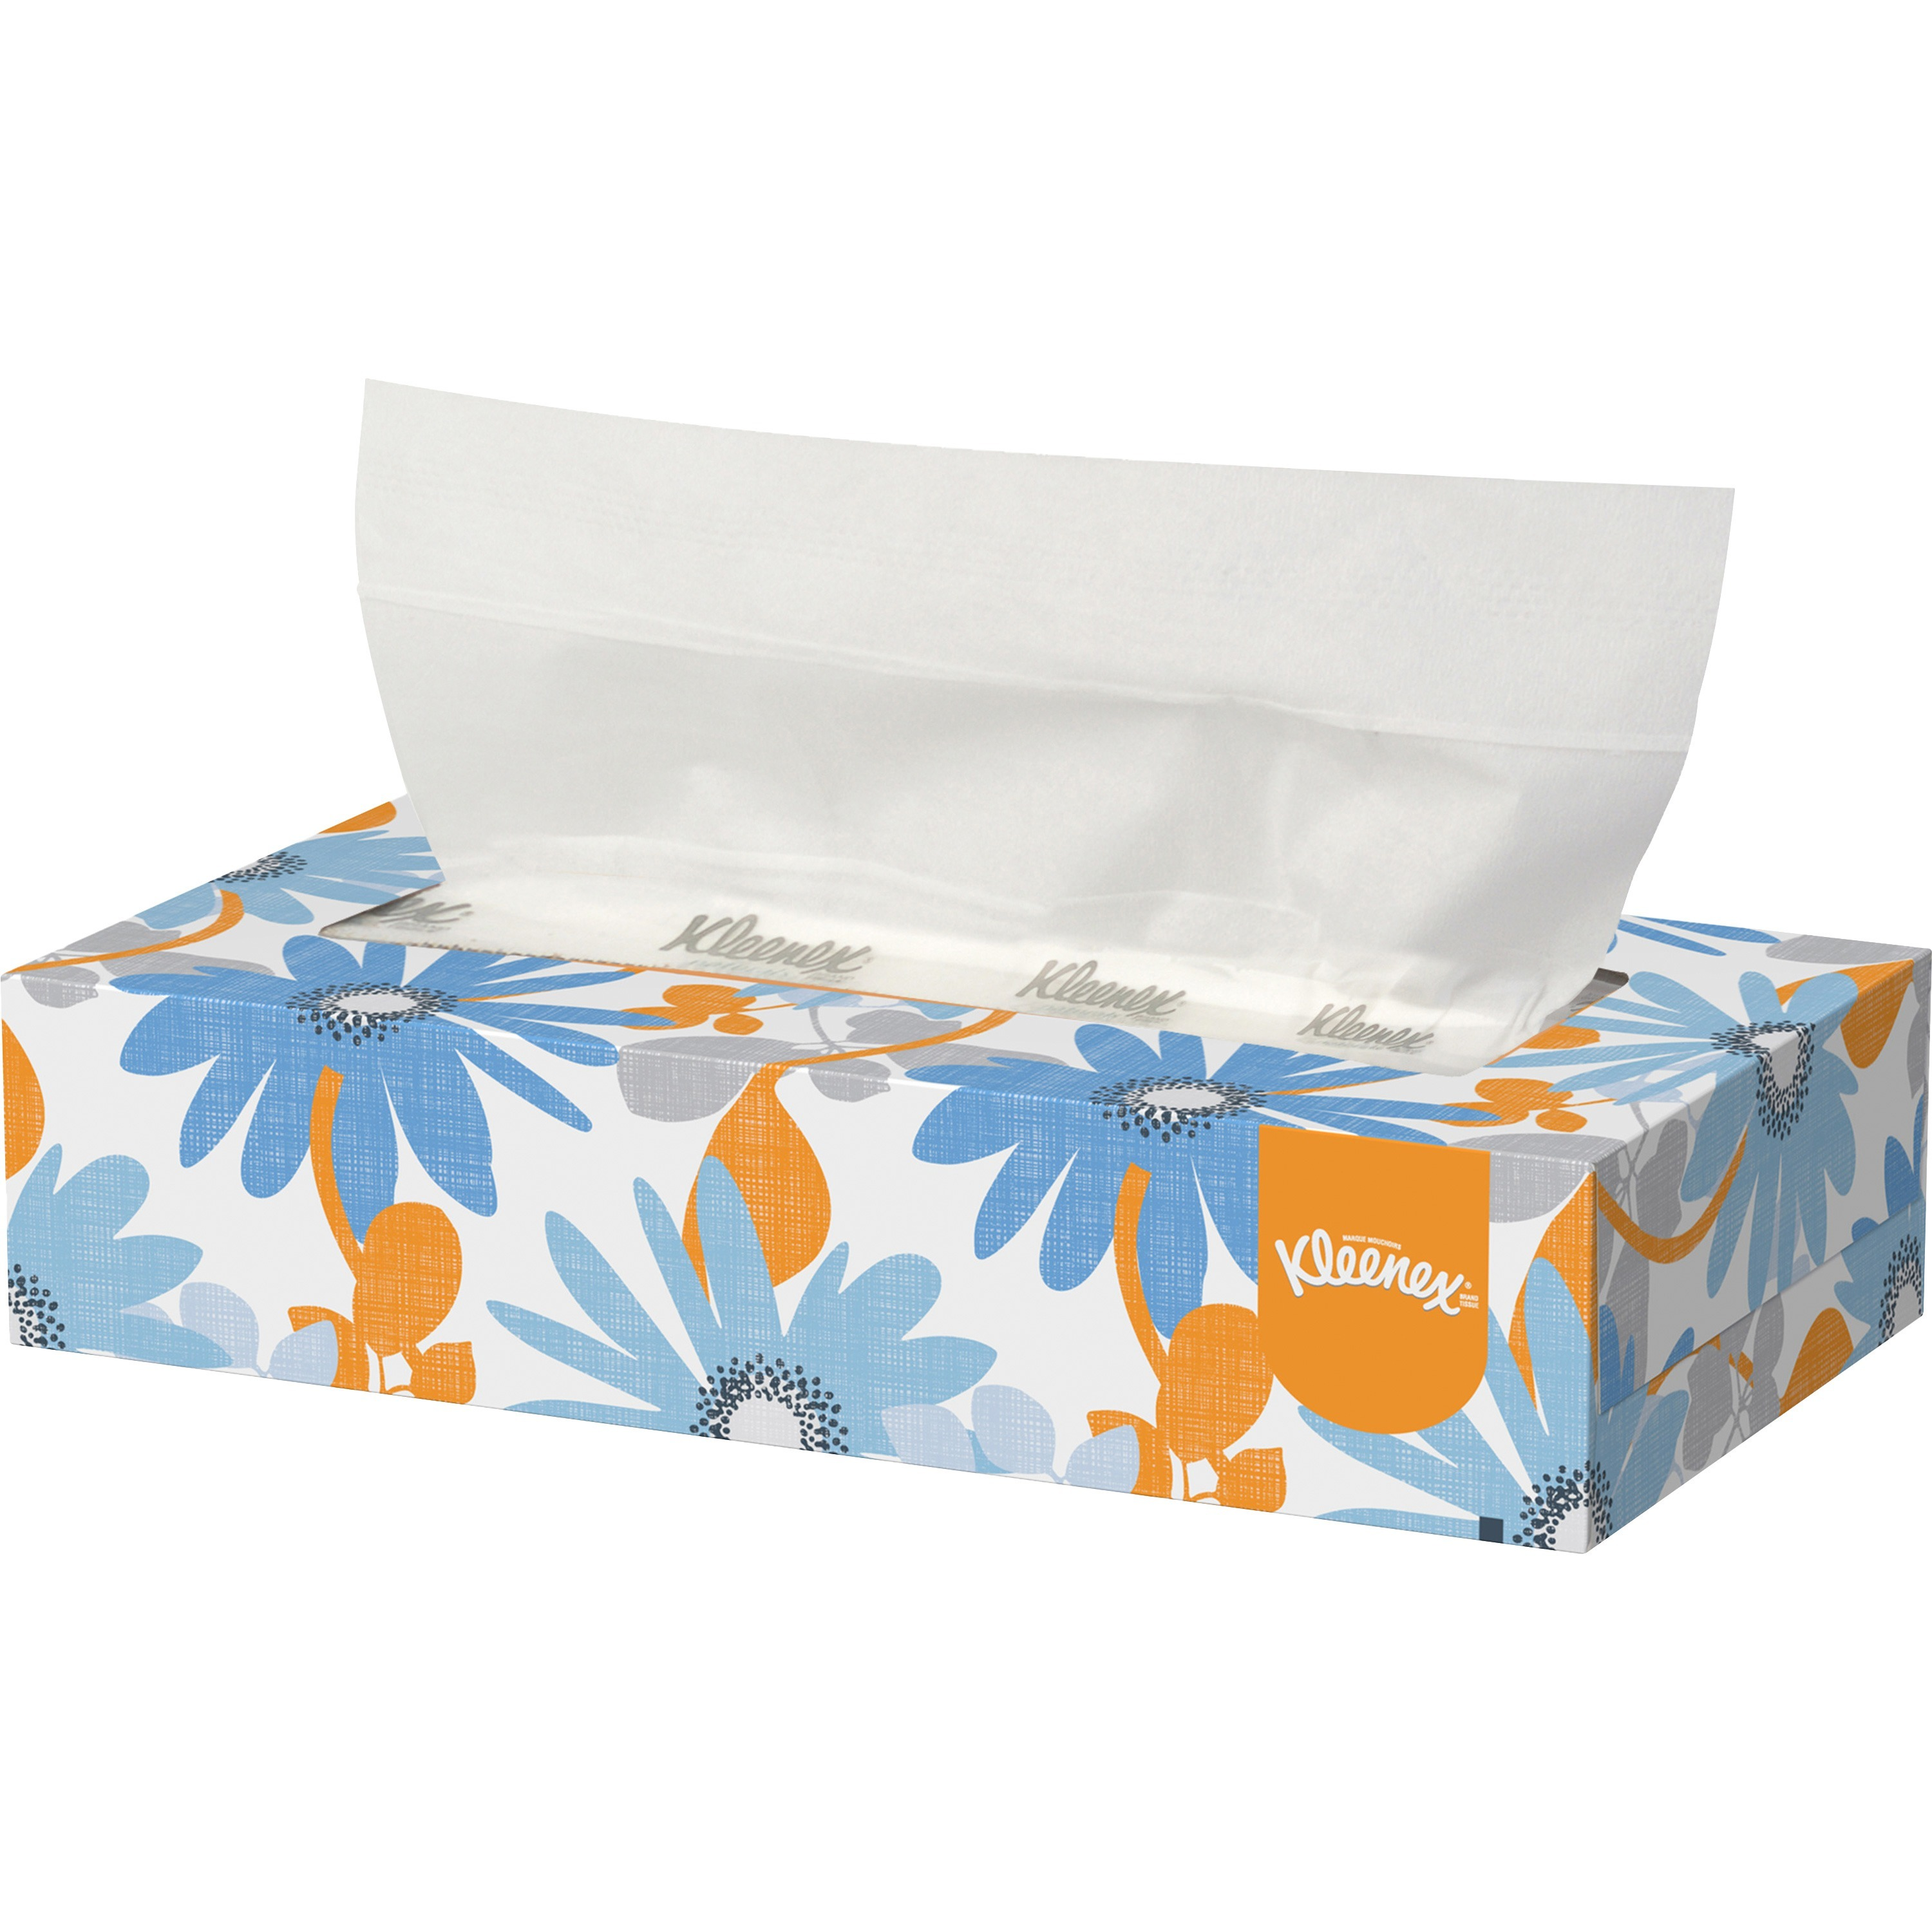 Kleenex, KCC21606BX, Low Profile Box Facial Tissues, 125 / Box, White